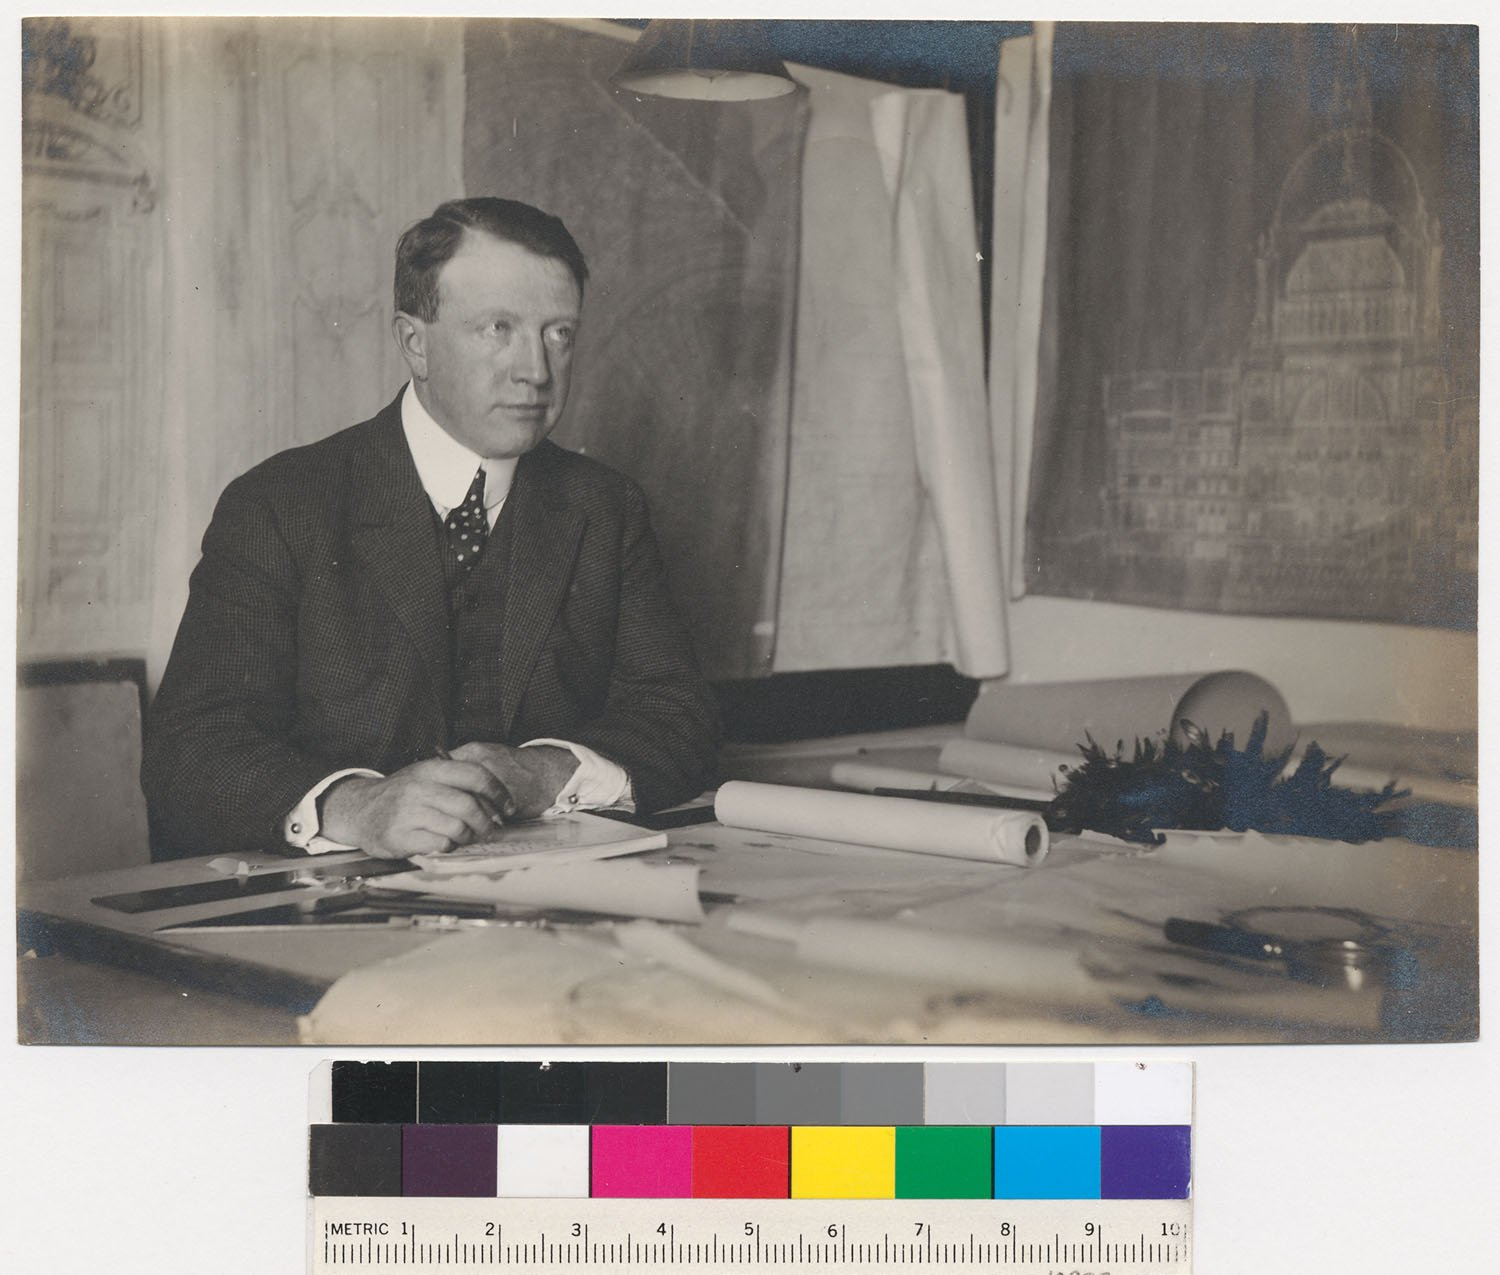 Architect Arthur Brown, Jr. in 1915. His design for Coit Tower was not always well-received, despite his previous success with San Francisco City Hall and the War Memorial Opera House.